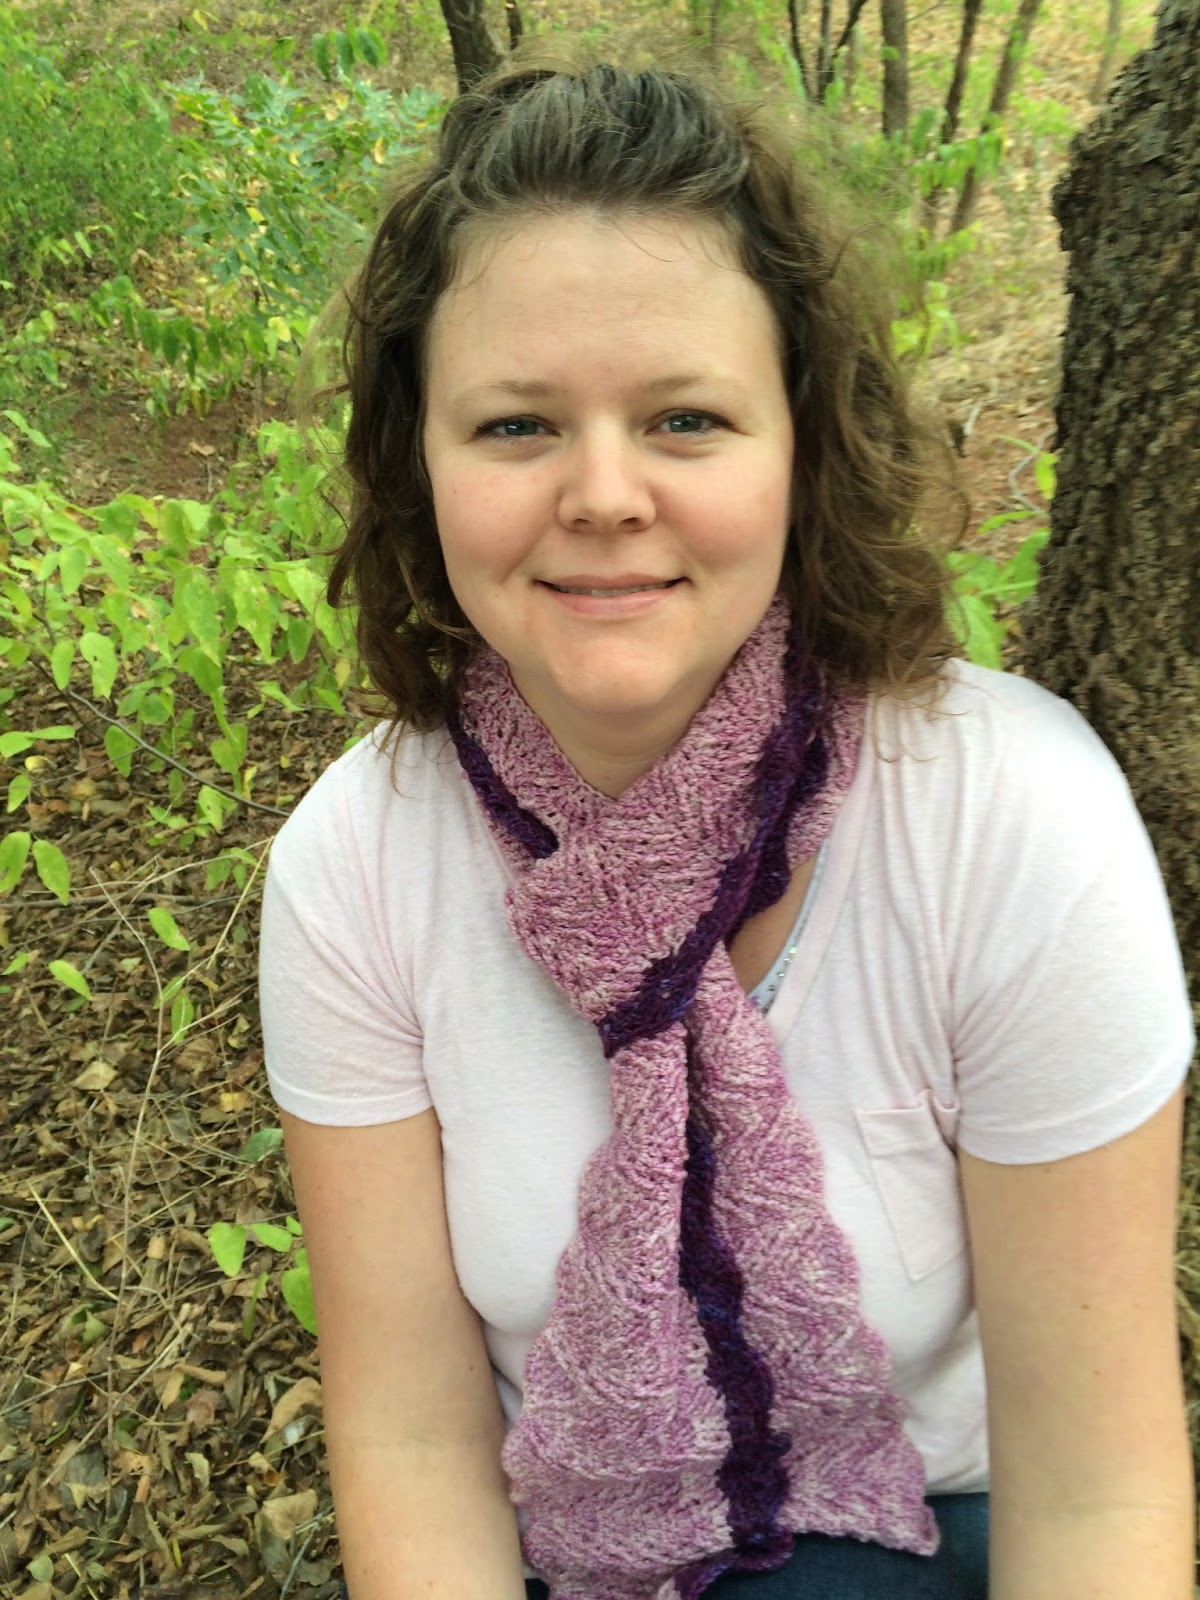 Woman in the woods wearing a purple crochet textured scarf.